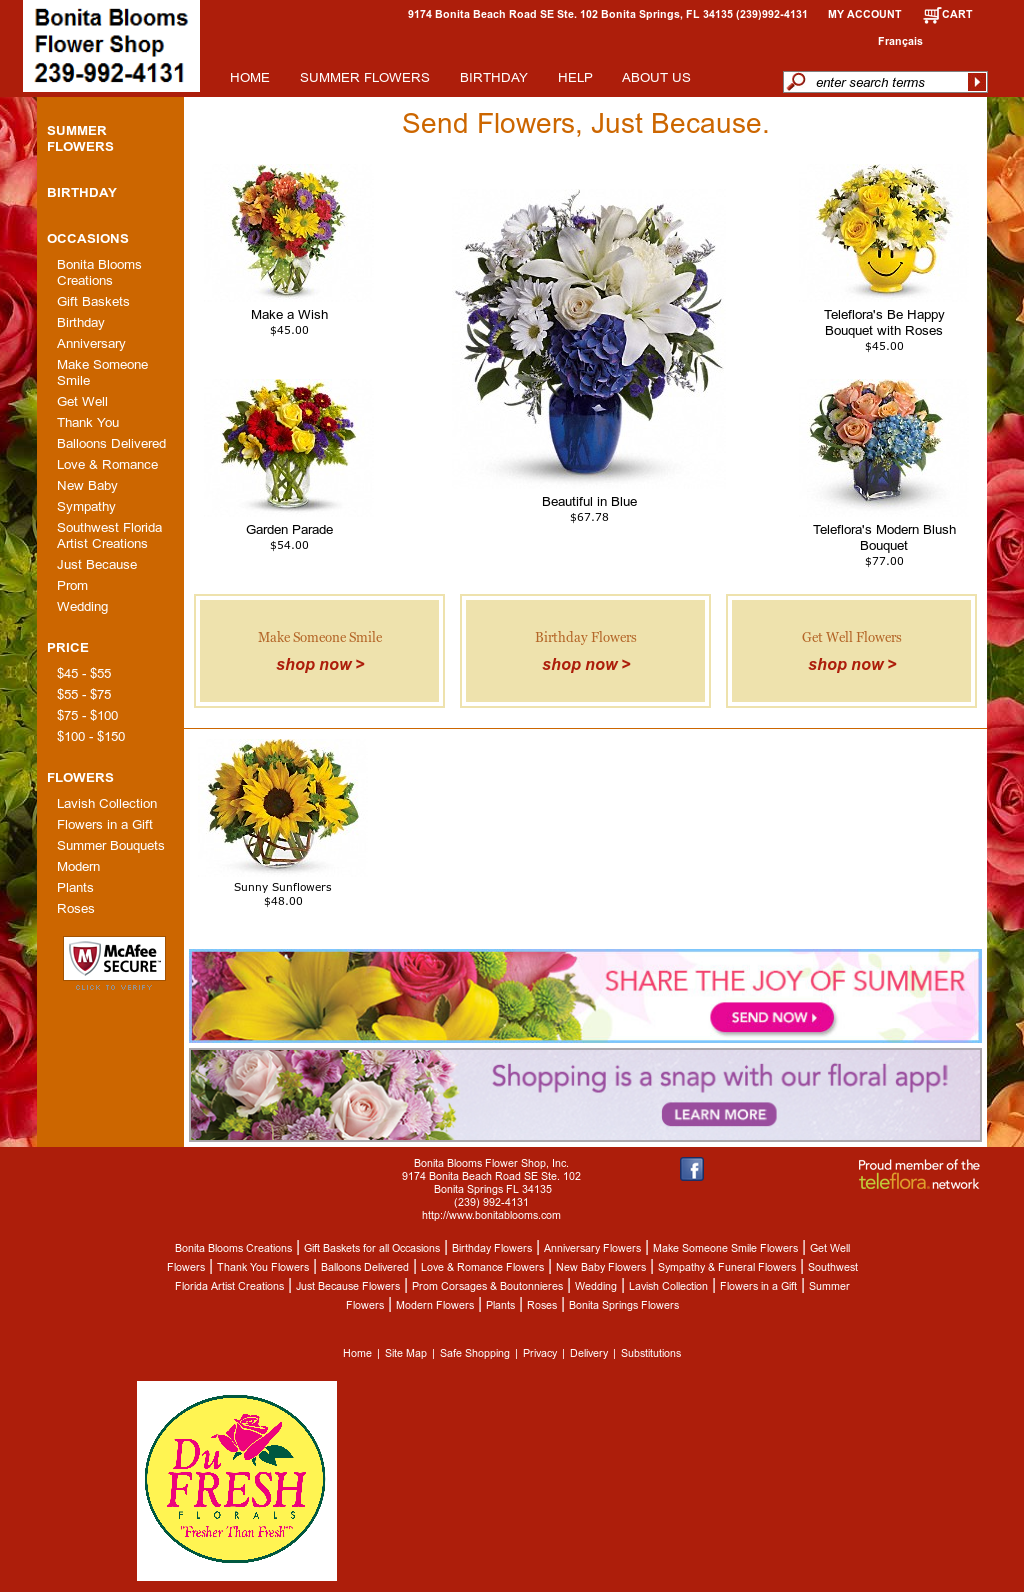 Bonita blooms flower shop competitors revenue and employees owler bonita blooms flower shop competitors revenue and employees owler company profile mightylinksfo